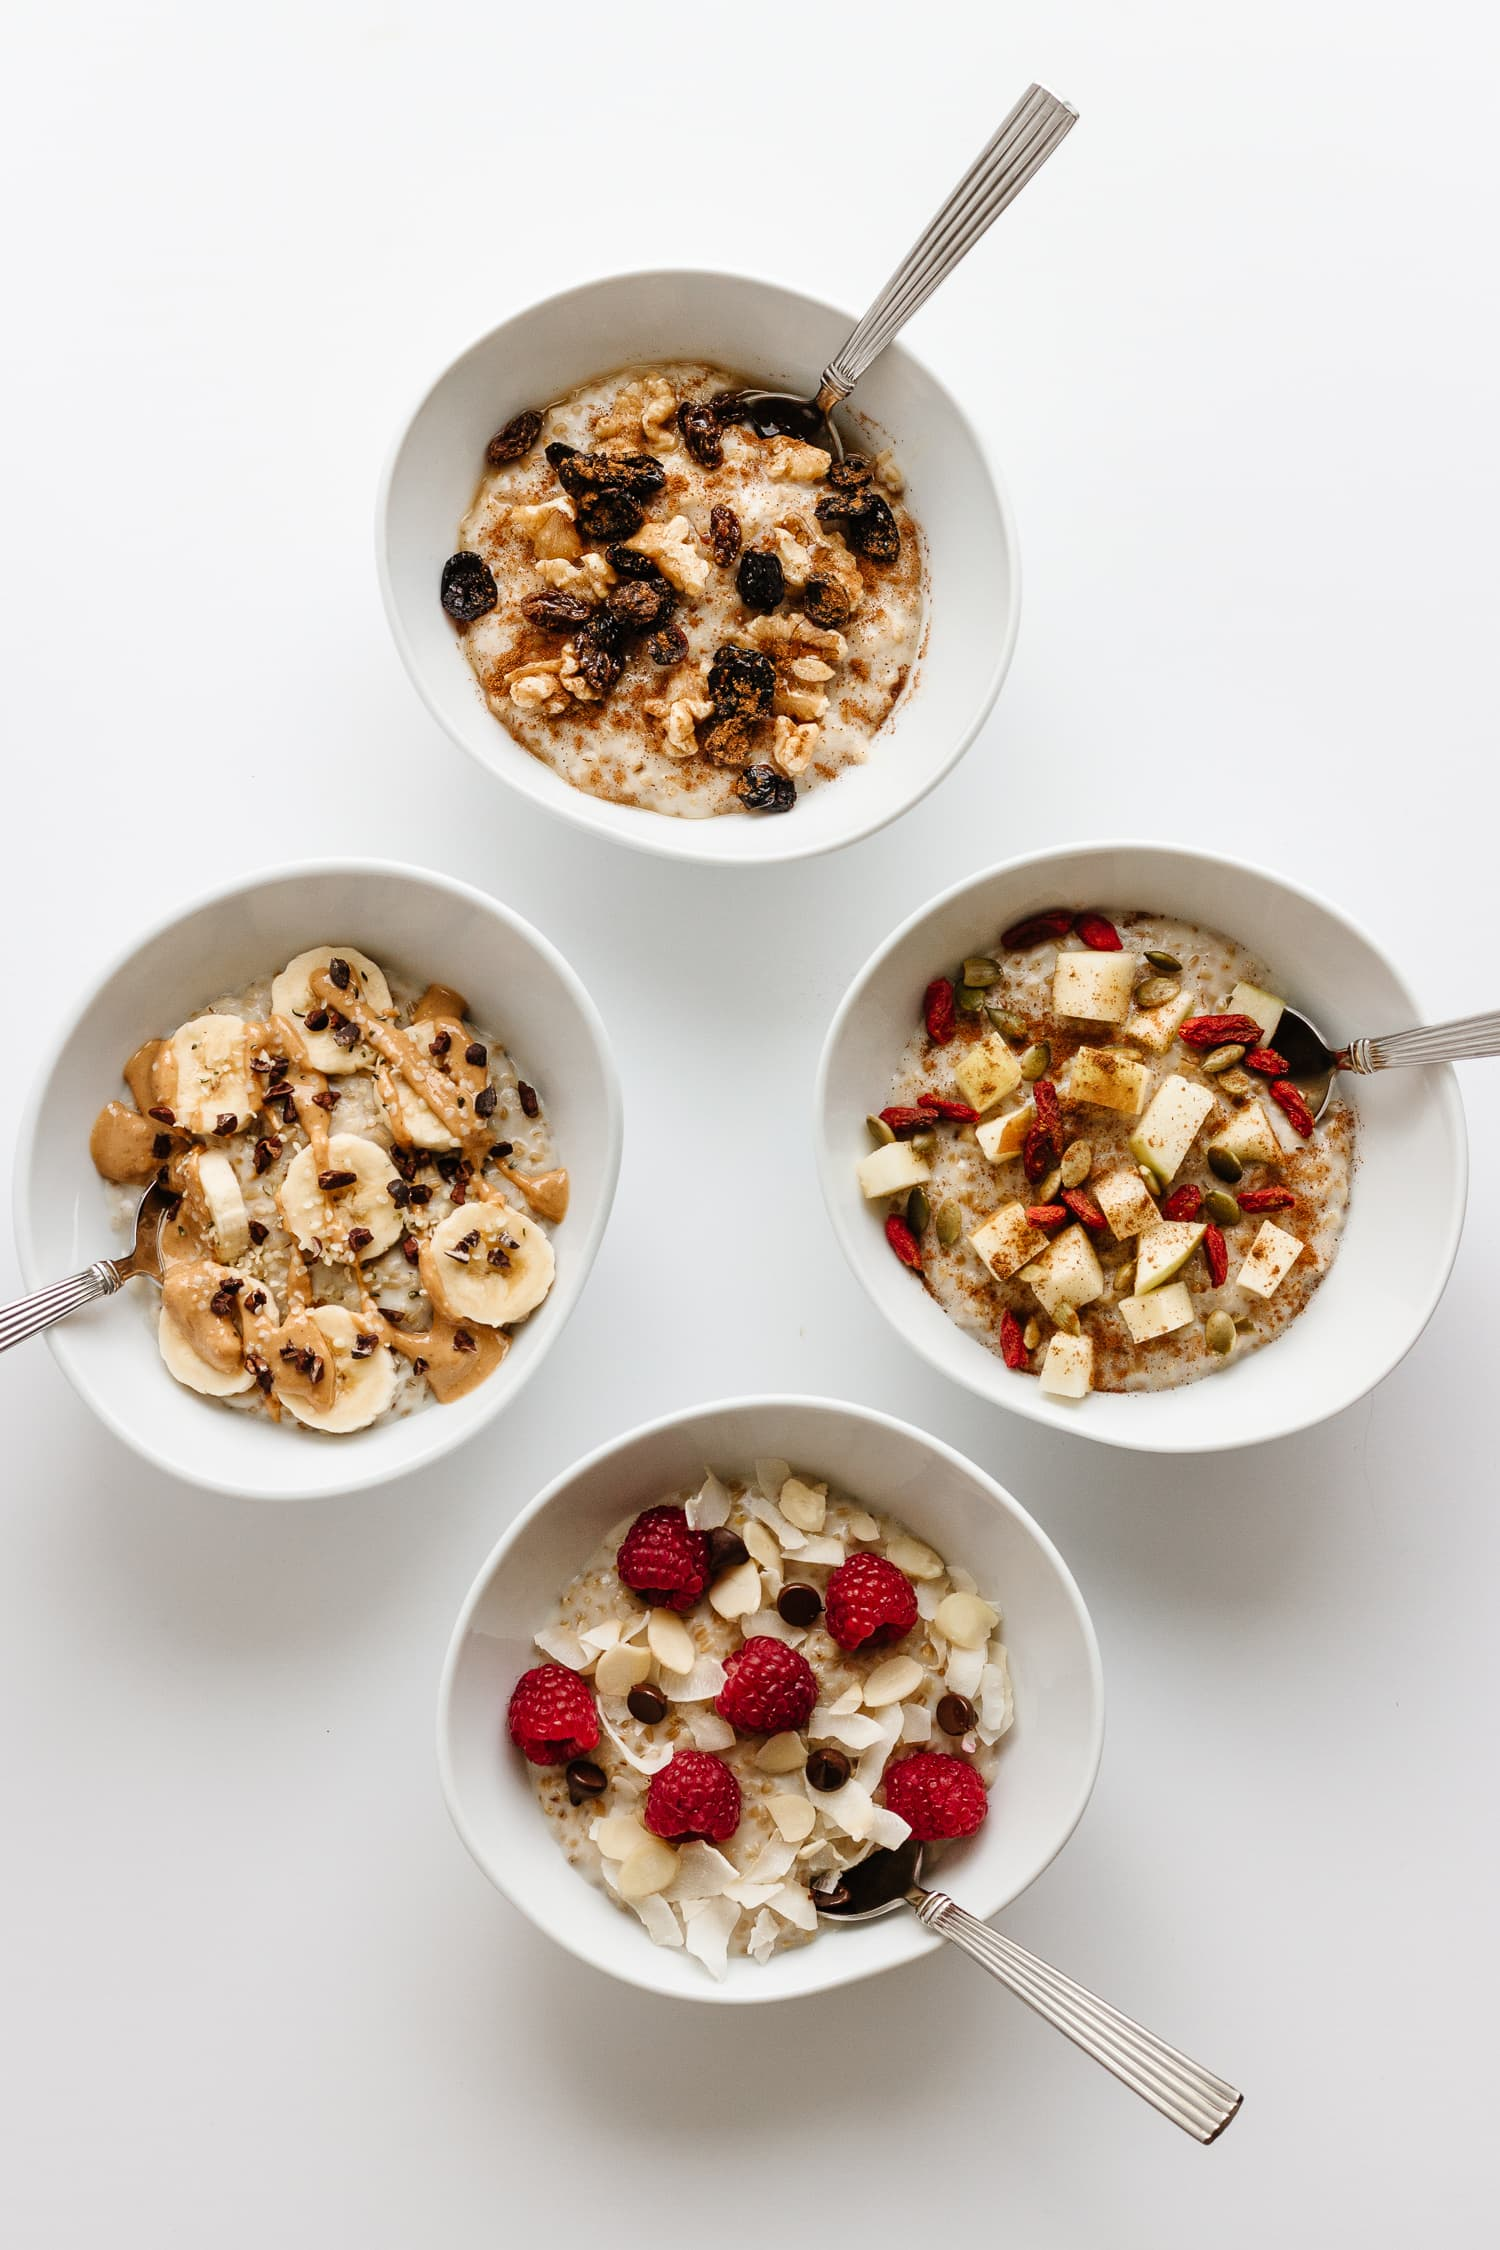 Four white bowls of steel cut oats with various toppings on a white background